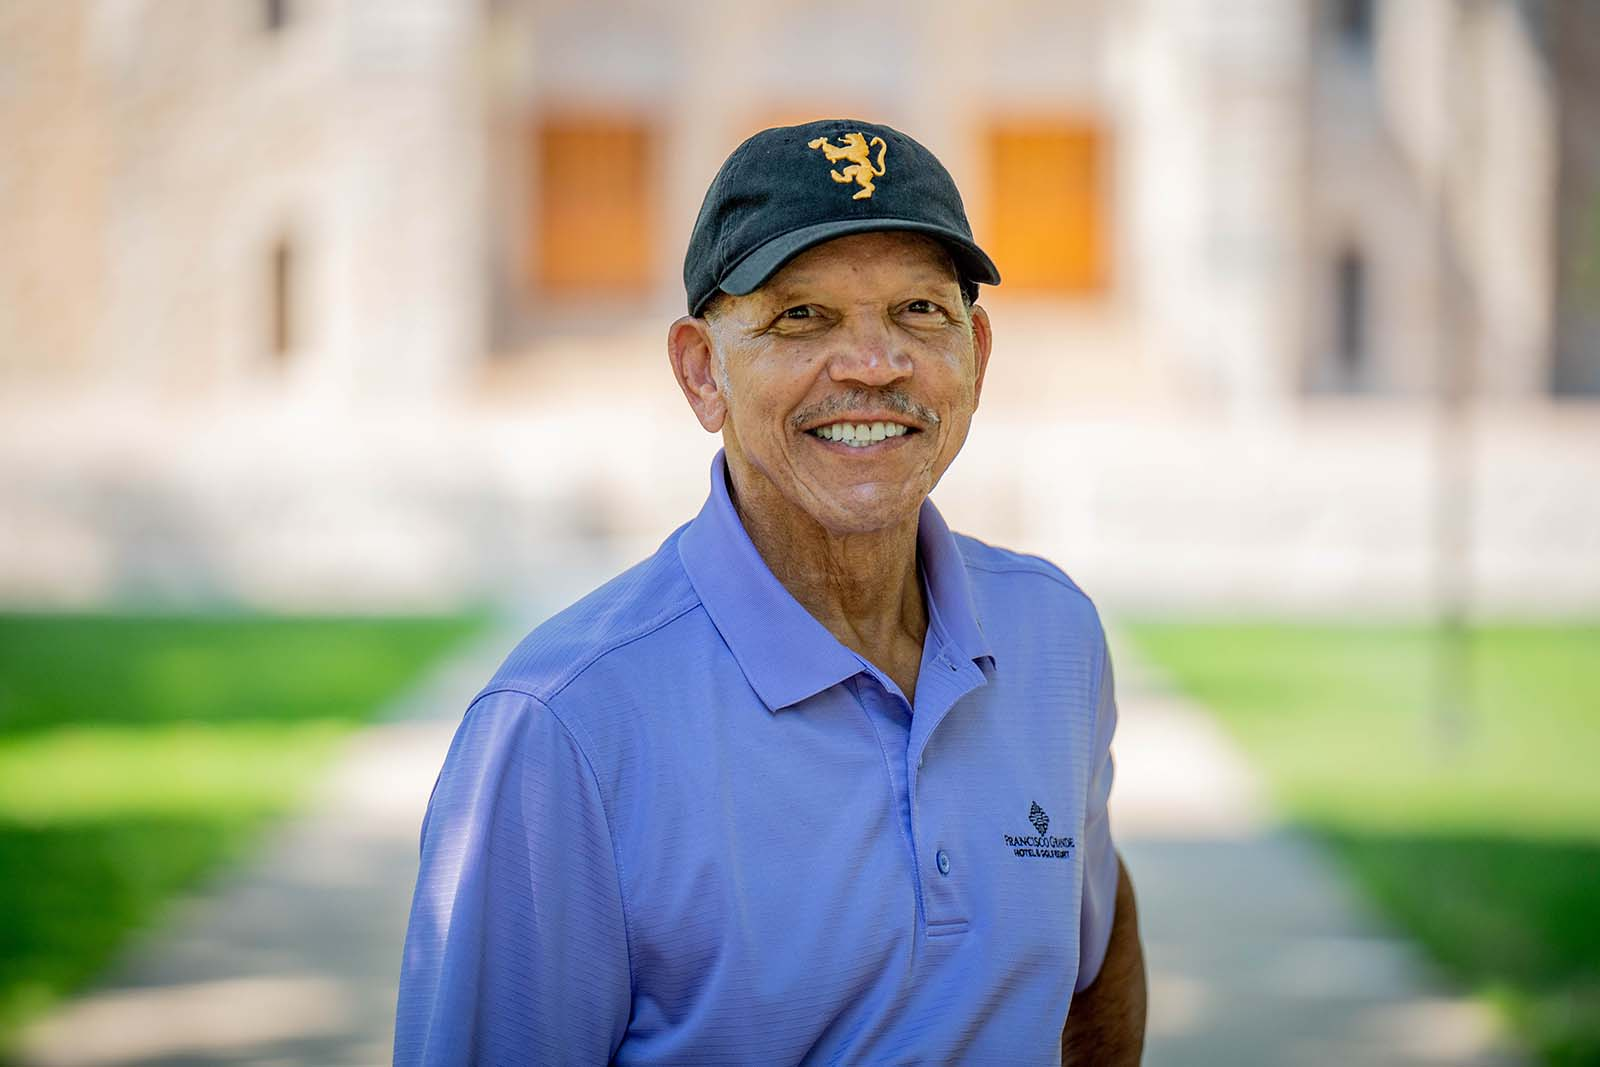 Former St. Olaf Regent Ron Hunter '70 pauses on campus in front of Boe Memorial Chapel for the Class of 1970's 50th Reunion. As a student, he co-founded the Cultural Union for Black Expression to educate Oles about Black culture and history in America. Recently he included a scholarship for CUBE members in his estate to pay forward the support he received and to continue advancing diversity, equity, and inclusion at St. Olaf.